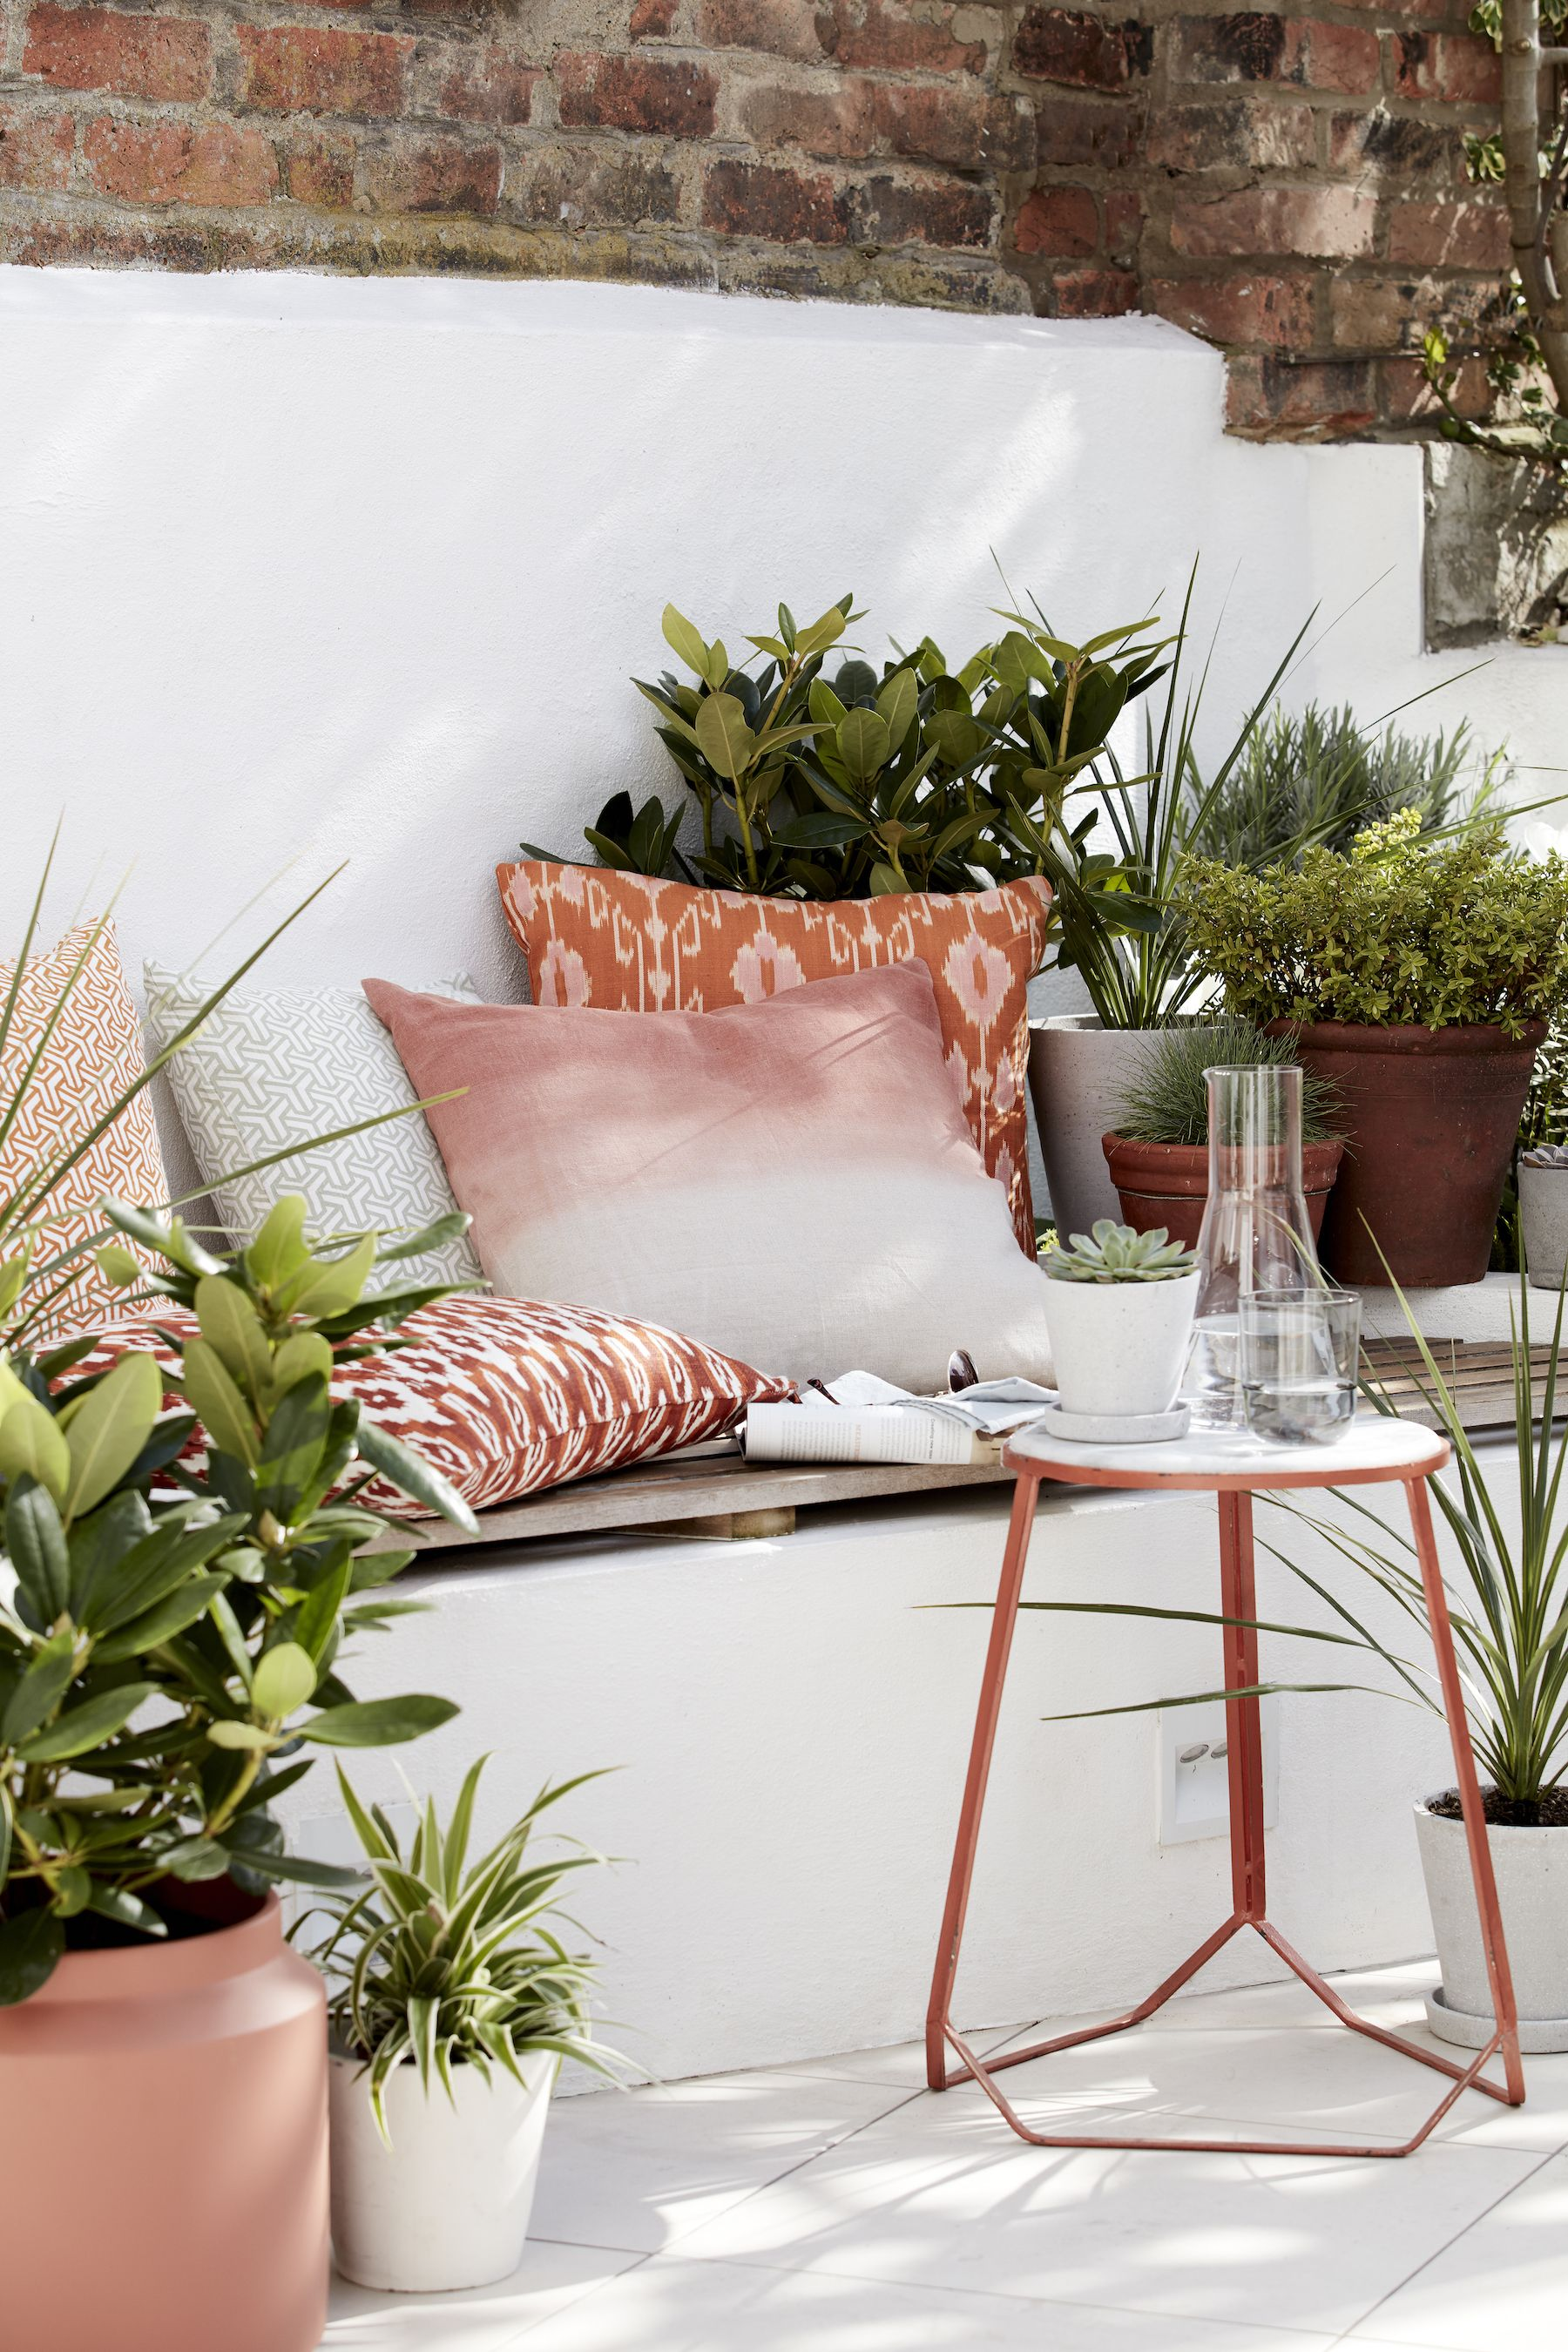 An interior designer's guide to creating a stylish outdoor living space